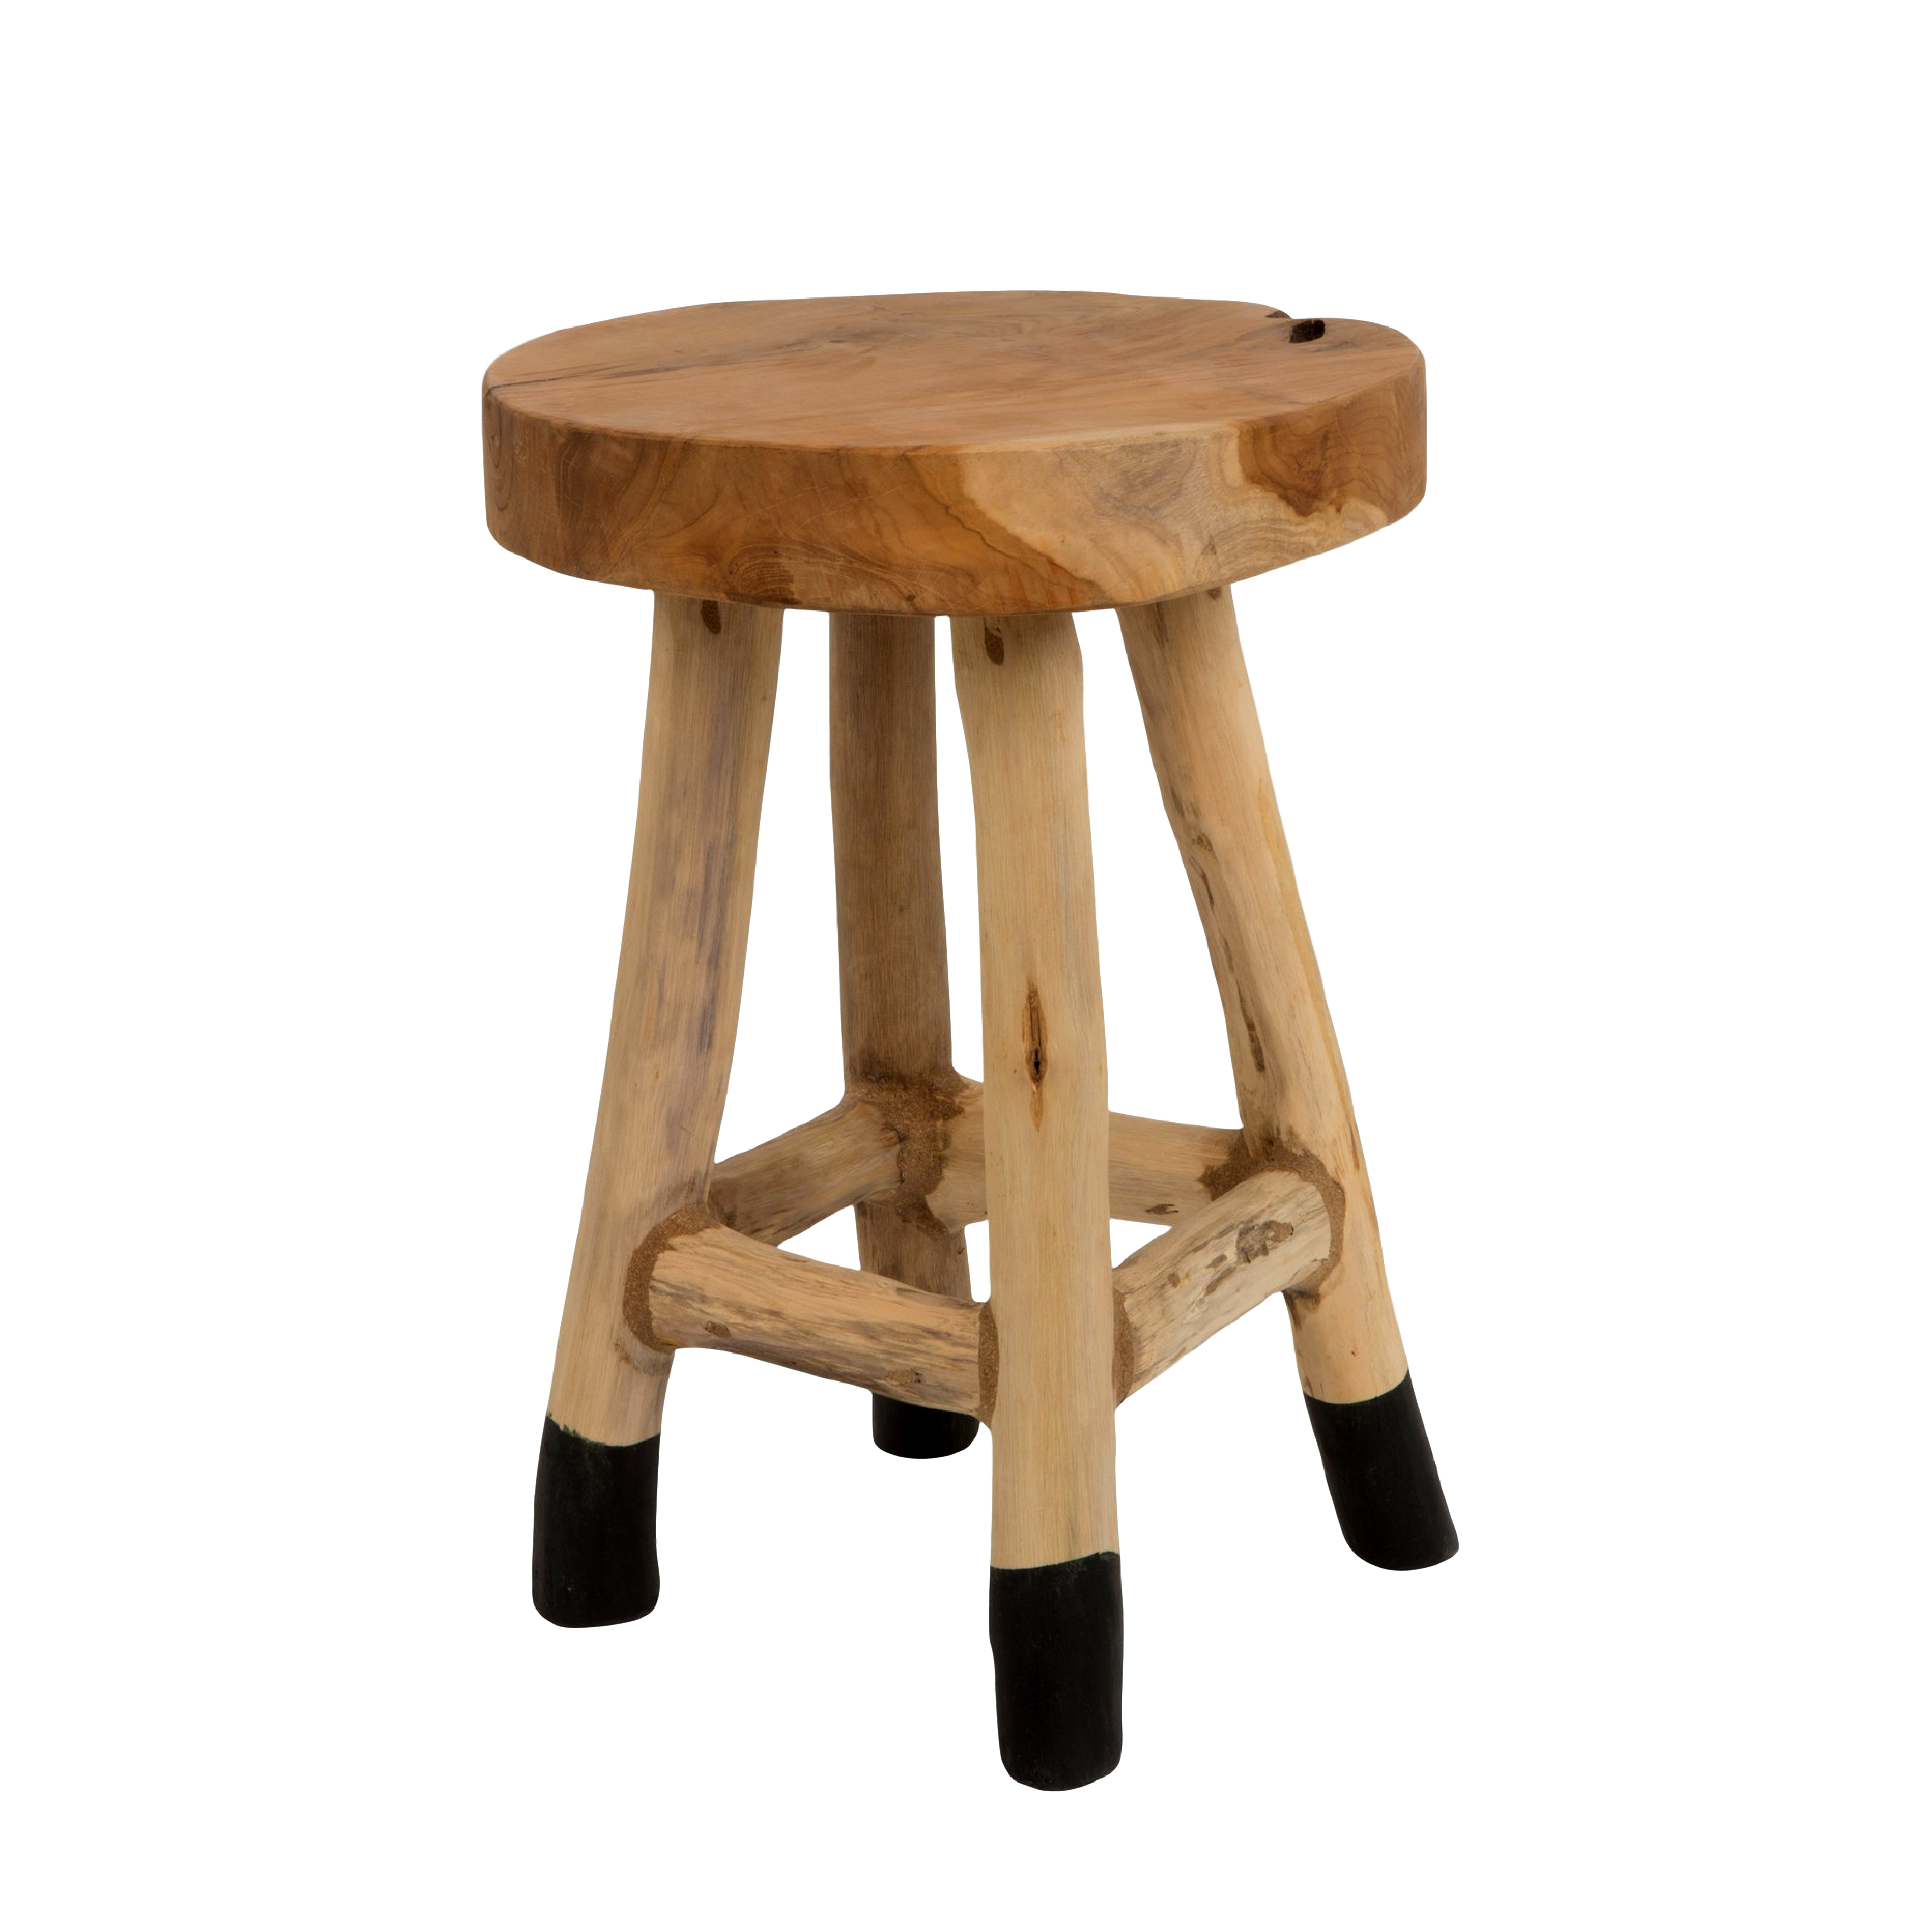 TABOURET 3 SUISSES COLLECTION – 49€